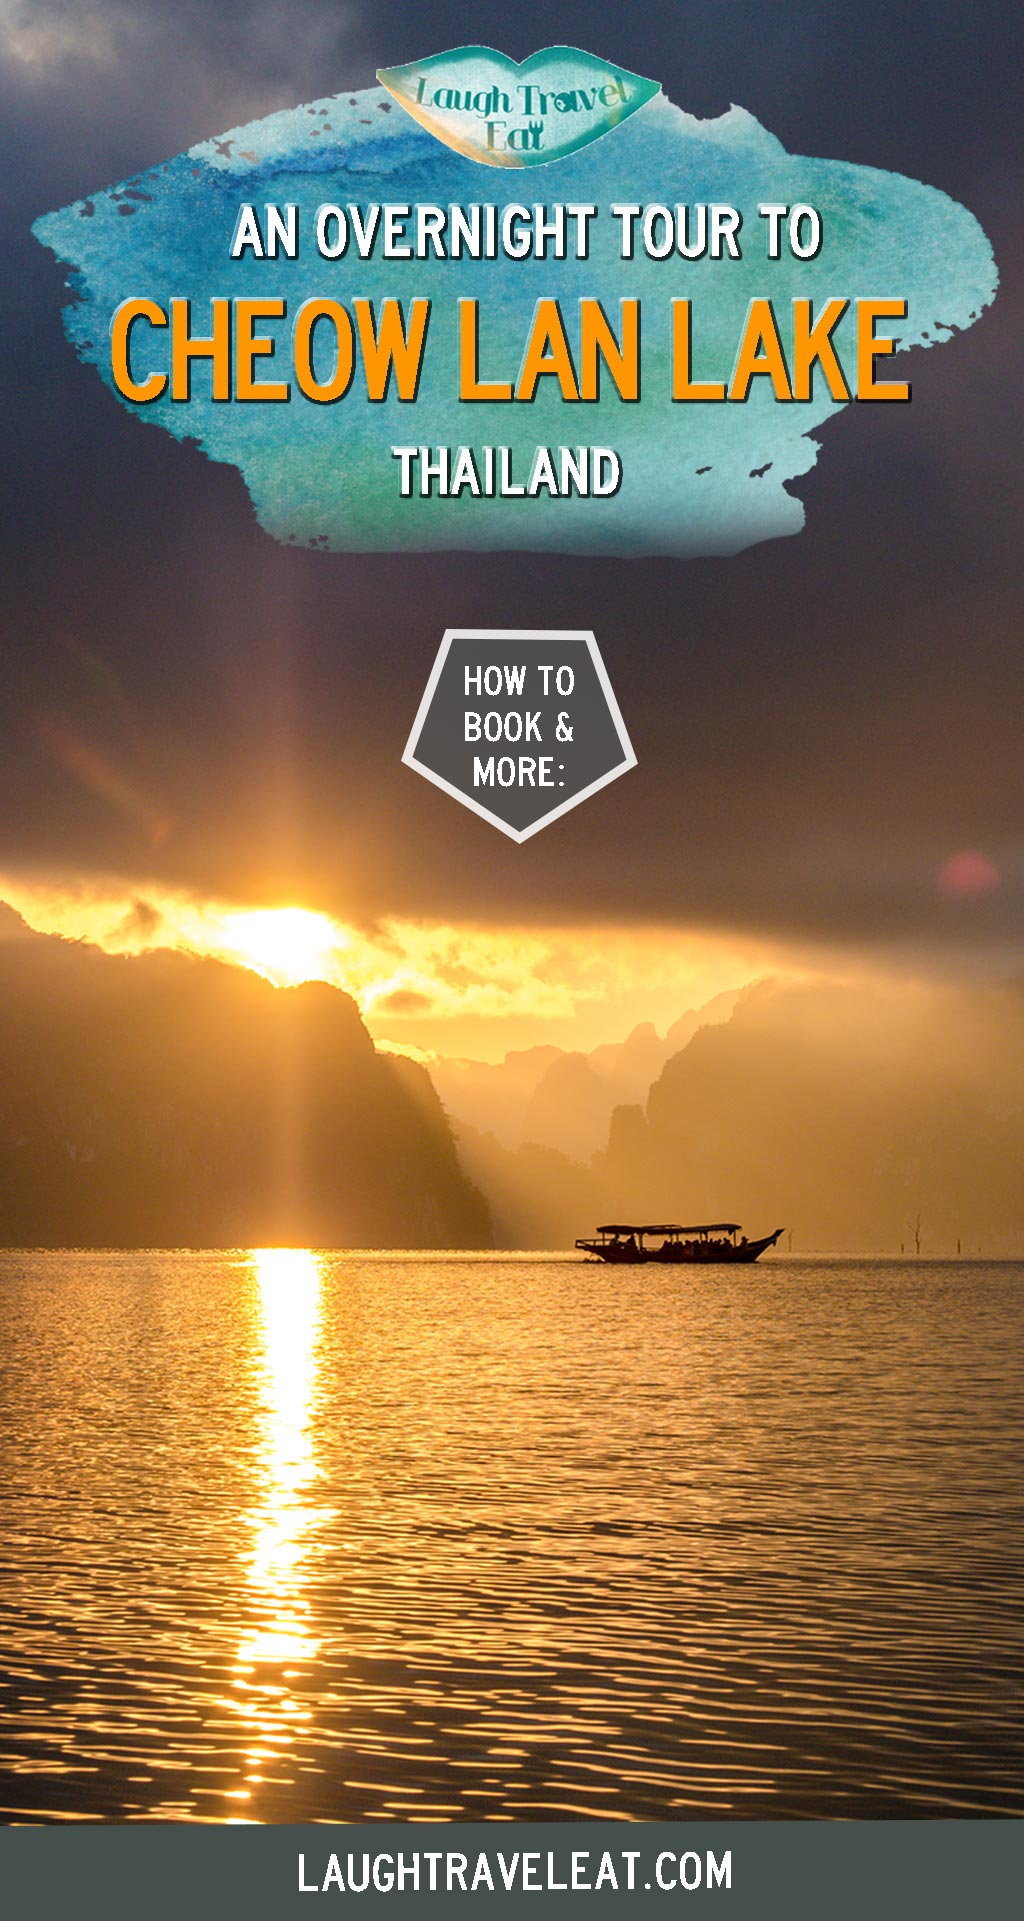 If there is one thing you can do in Khao Sok, make it the Cheow Lan Lake overnight tour. Formed as a result of the building of Ratchaprapha Dam in the 70s, it is surrounded by beautiful limestone mountains, formations, and hidden caves. The overnight lake tour takes you into the jungle, caves, and staying in an overwater raft house. Here's all you need to know about the Cheow Lan Lake tour: #KhaoSok #CheowLanLake #Thailand